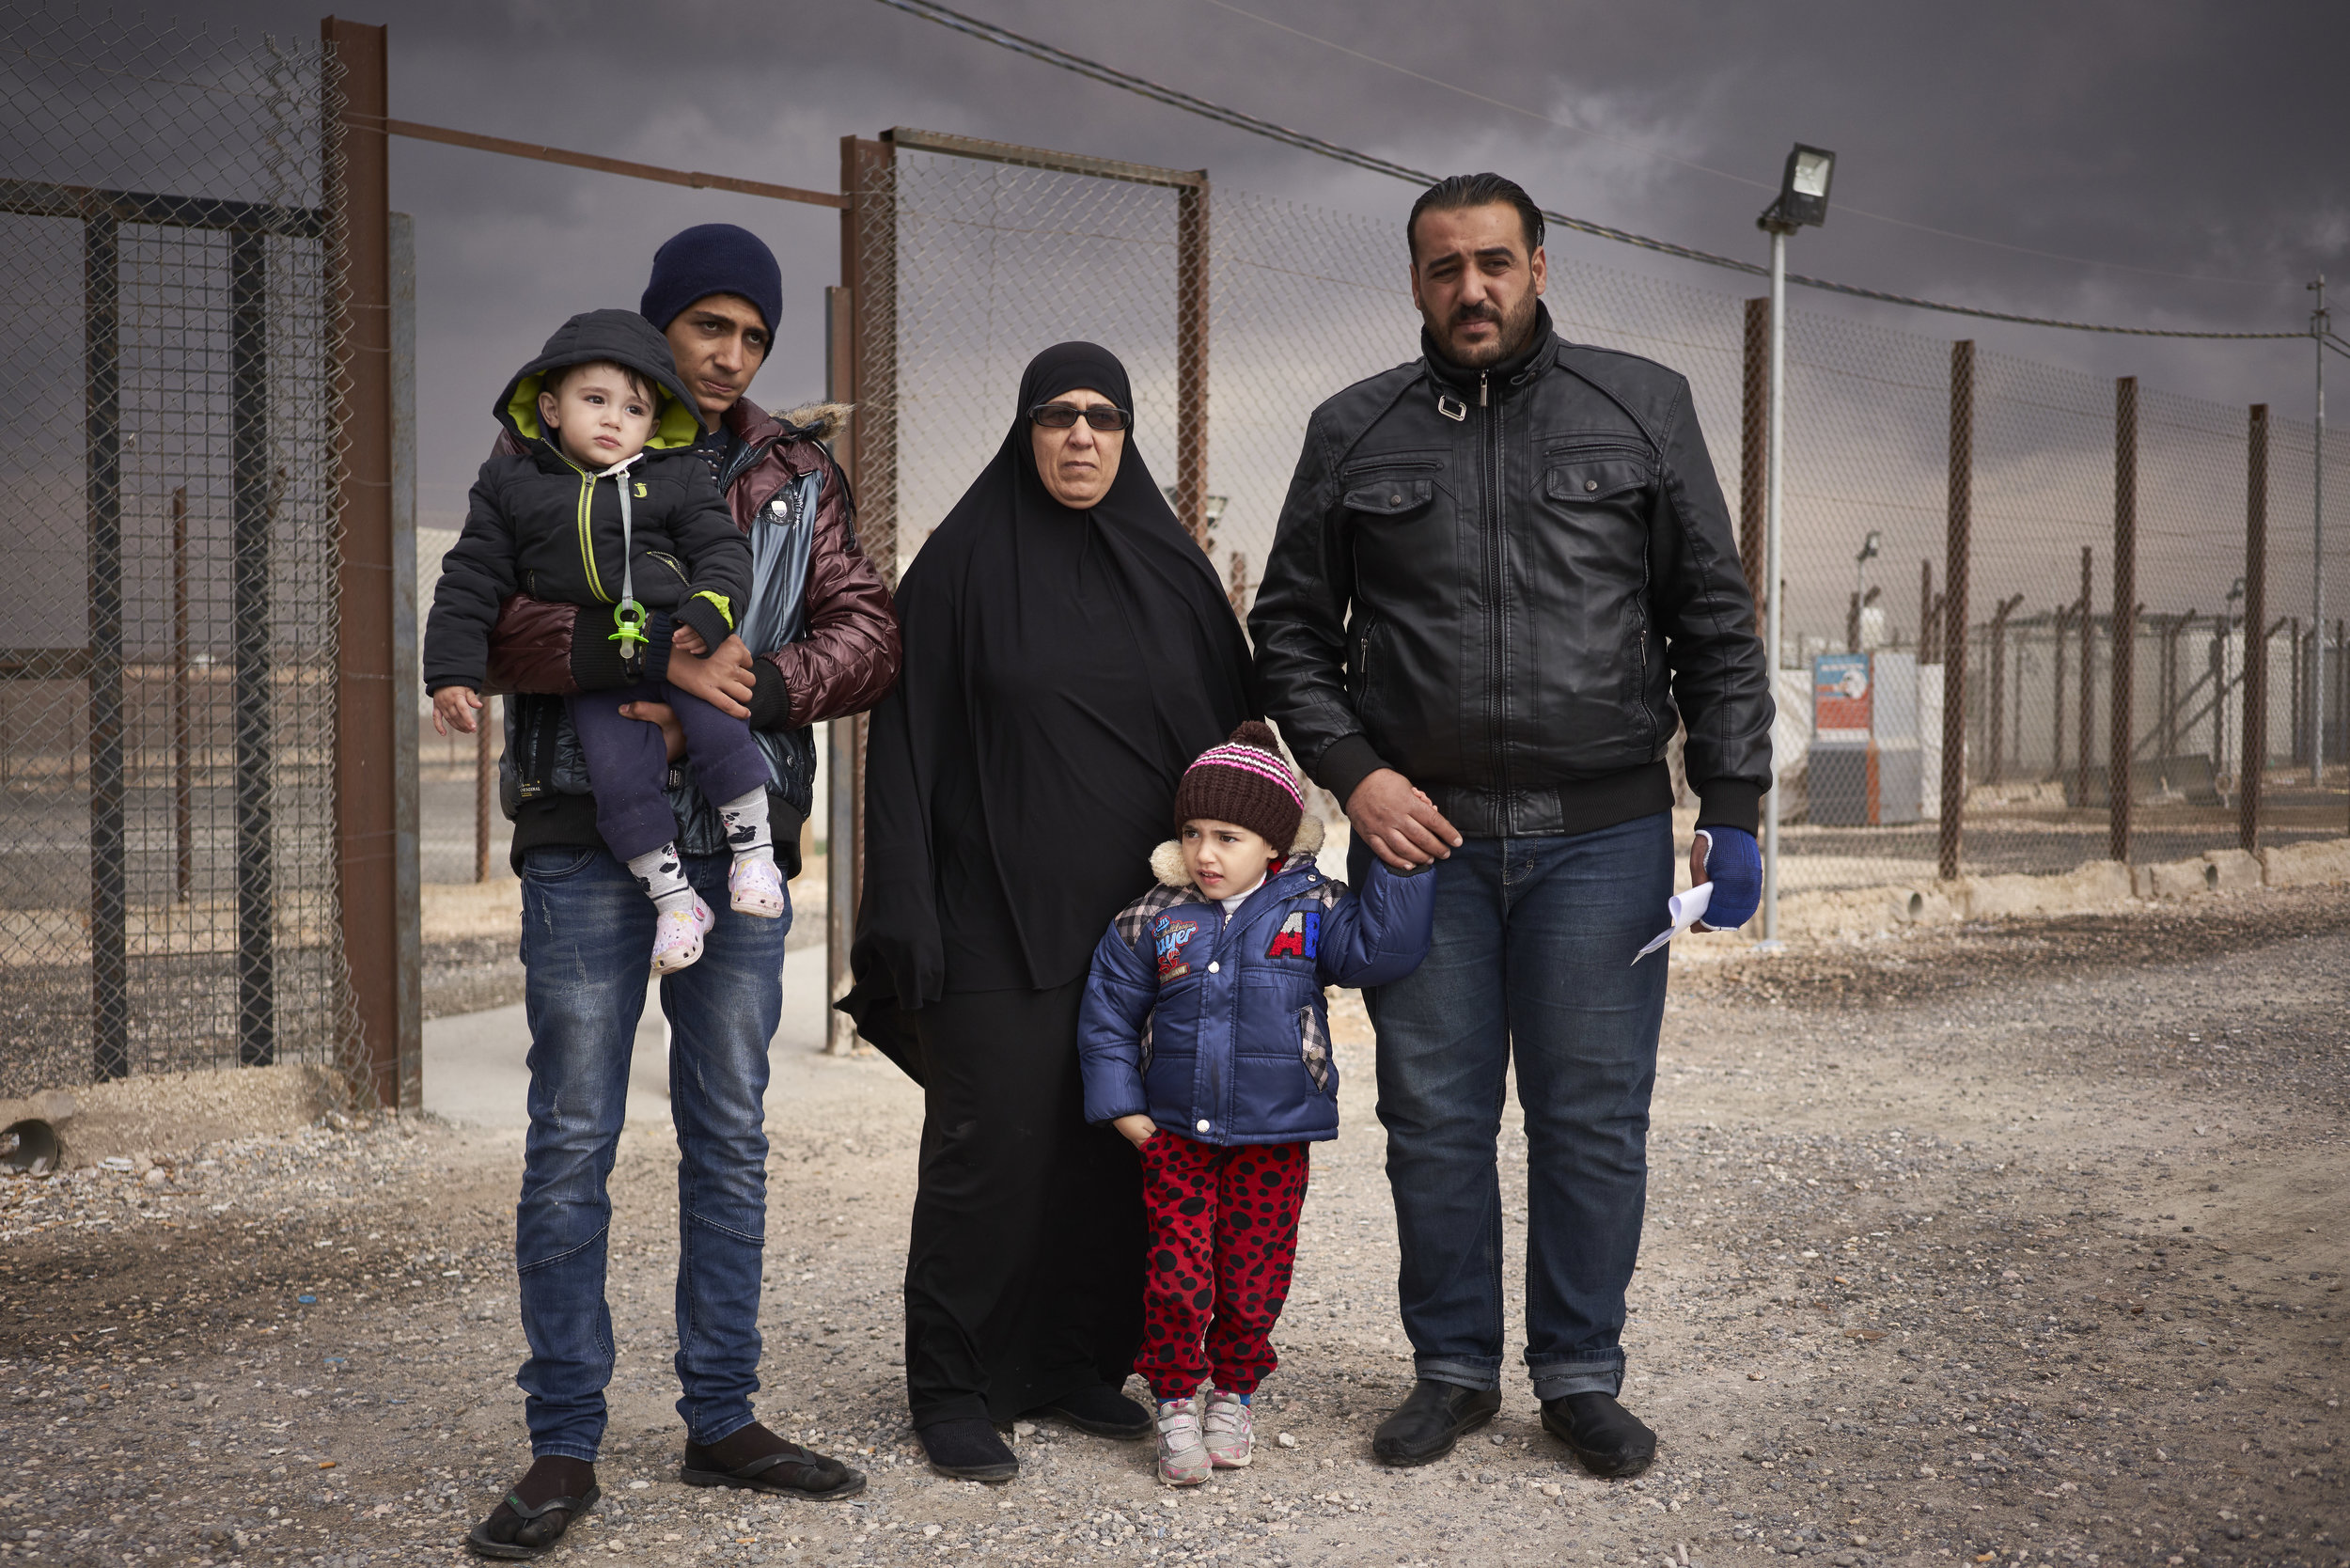 From right, Syrian refugee Marseel, 30, his daughter Yaucot, 5, mother Al Fareeda, 50, brother Yusuf, 14, and son Mohamed, 18 months, pose for a photograph before getting into a vehicle which will transport them to their newly assigned shelter in Azraq refugee camp, Zarqa Governorate, Jordan.